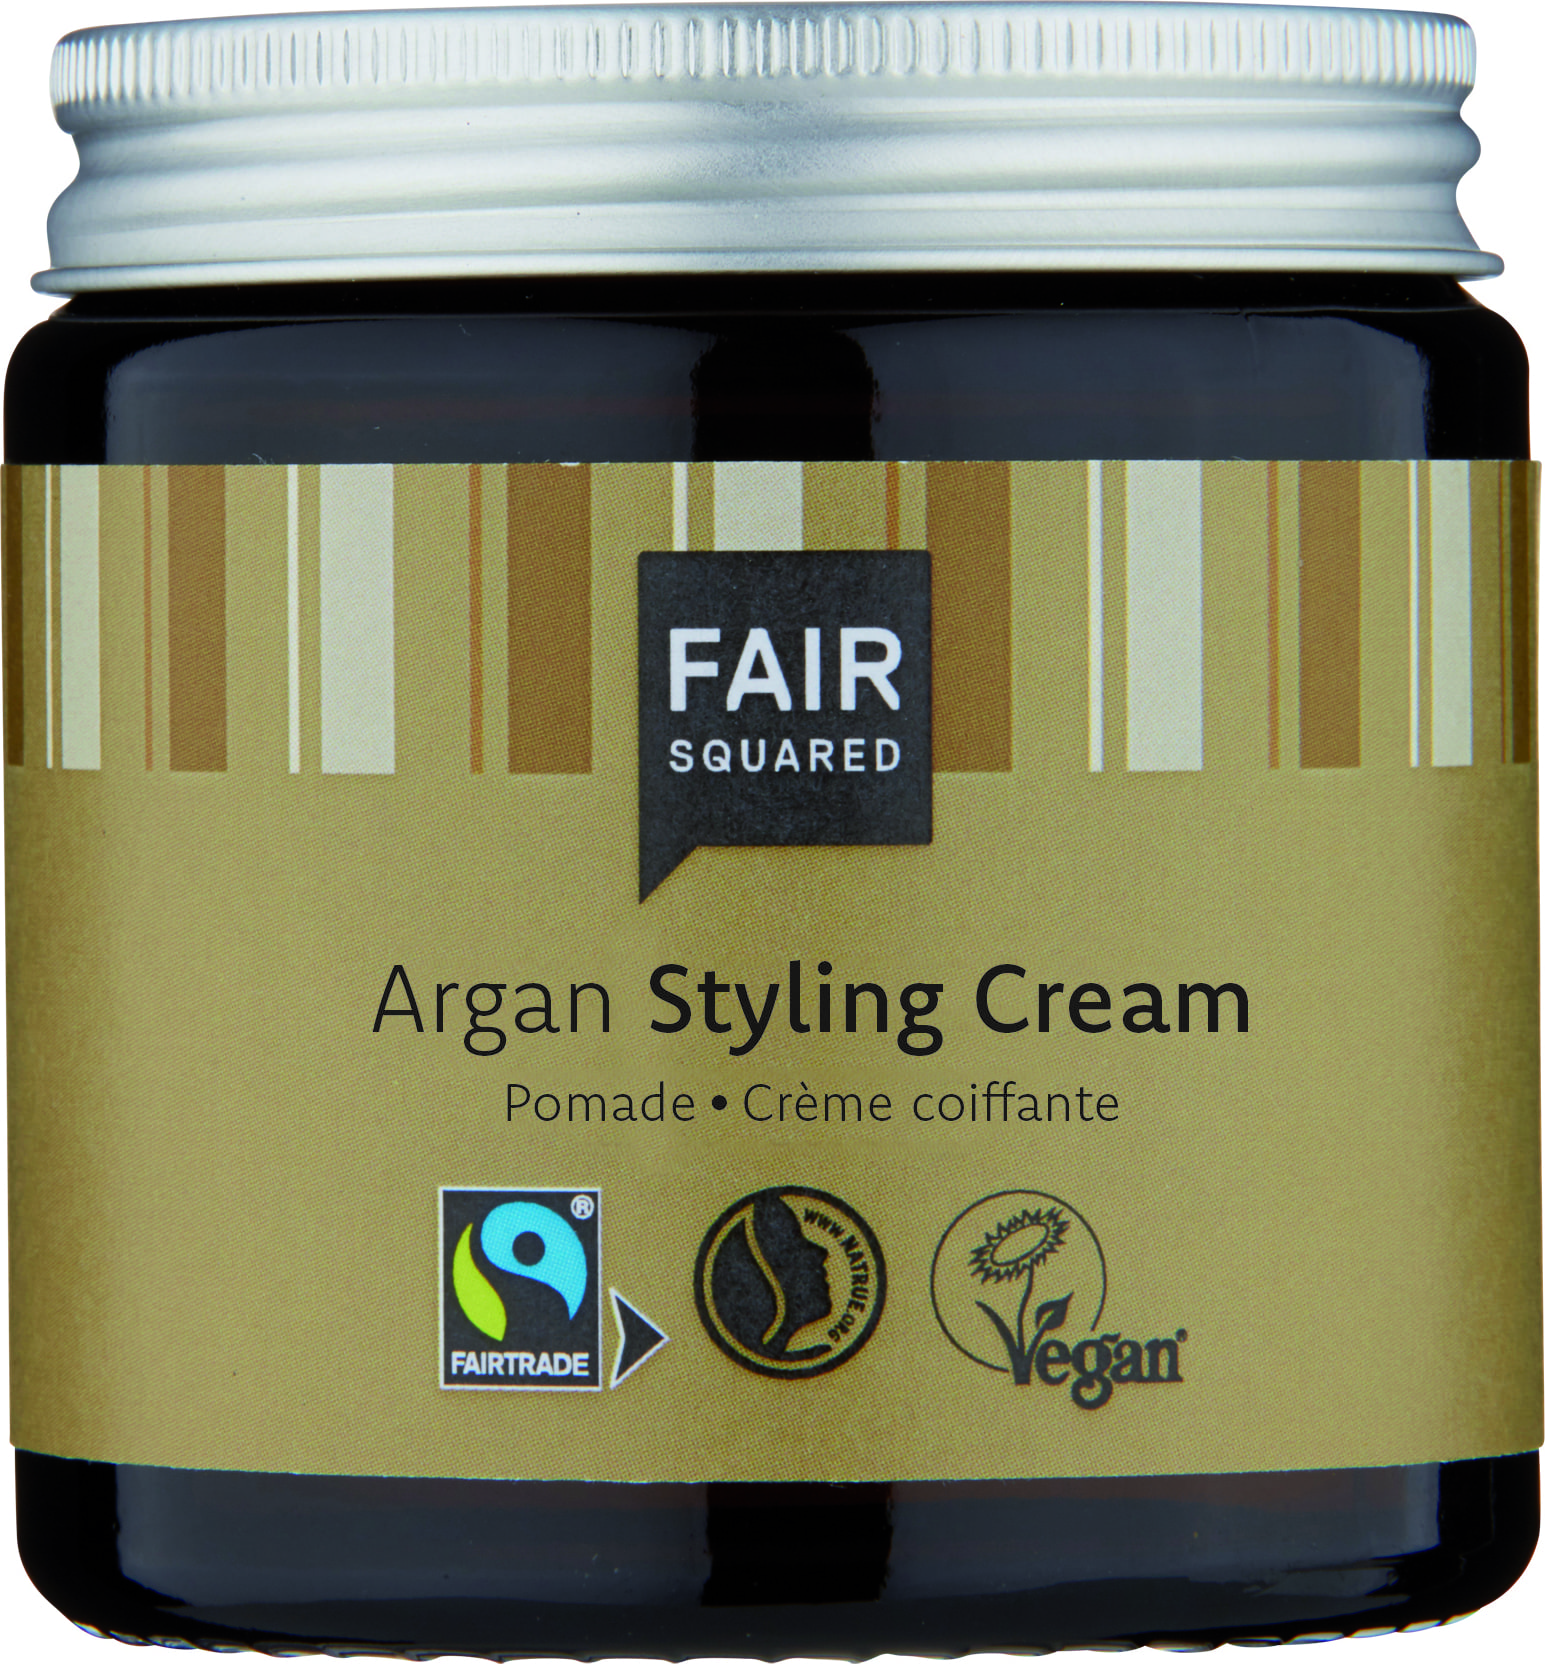 FAIR Squared Styling Cream Argan - 100 ml von FAIR Squared